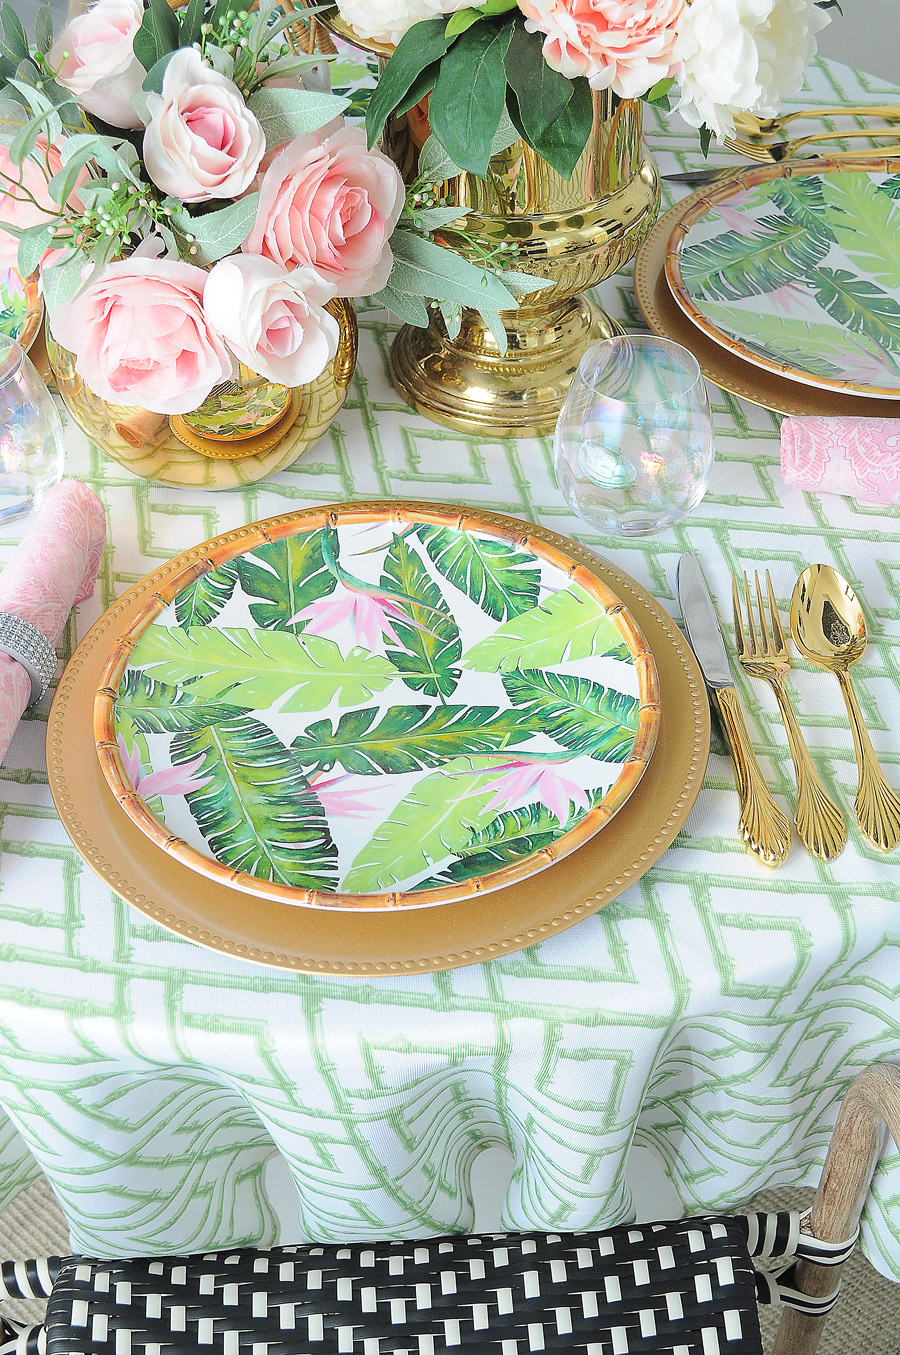 A preppy pink, green, gold and white tablescape accented with unique dinnerware and lots of peonies. Great mix of vintage and new pieces.